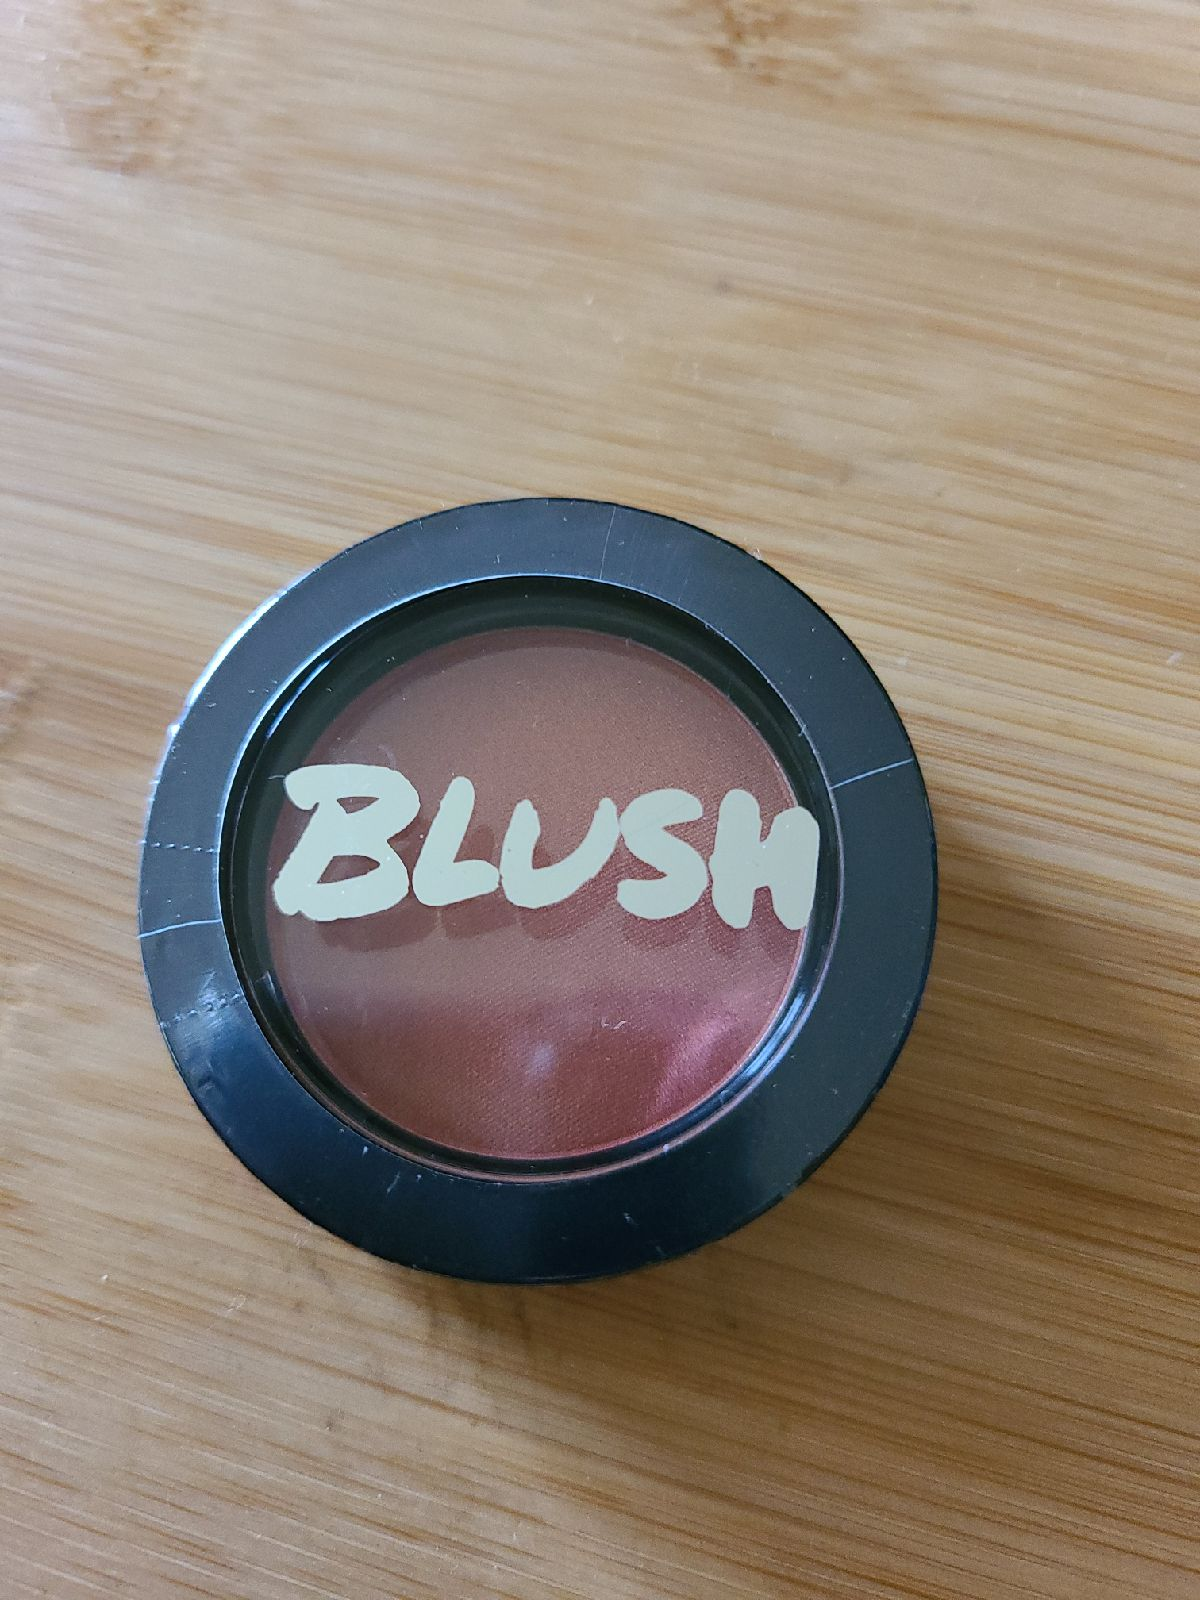 Model co blush - peach bellini 02